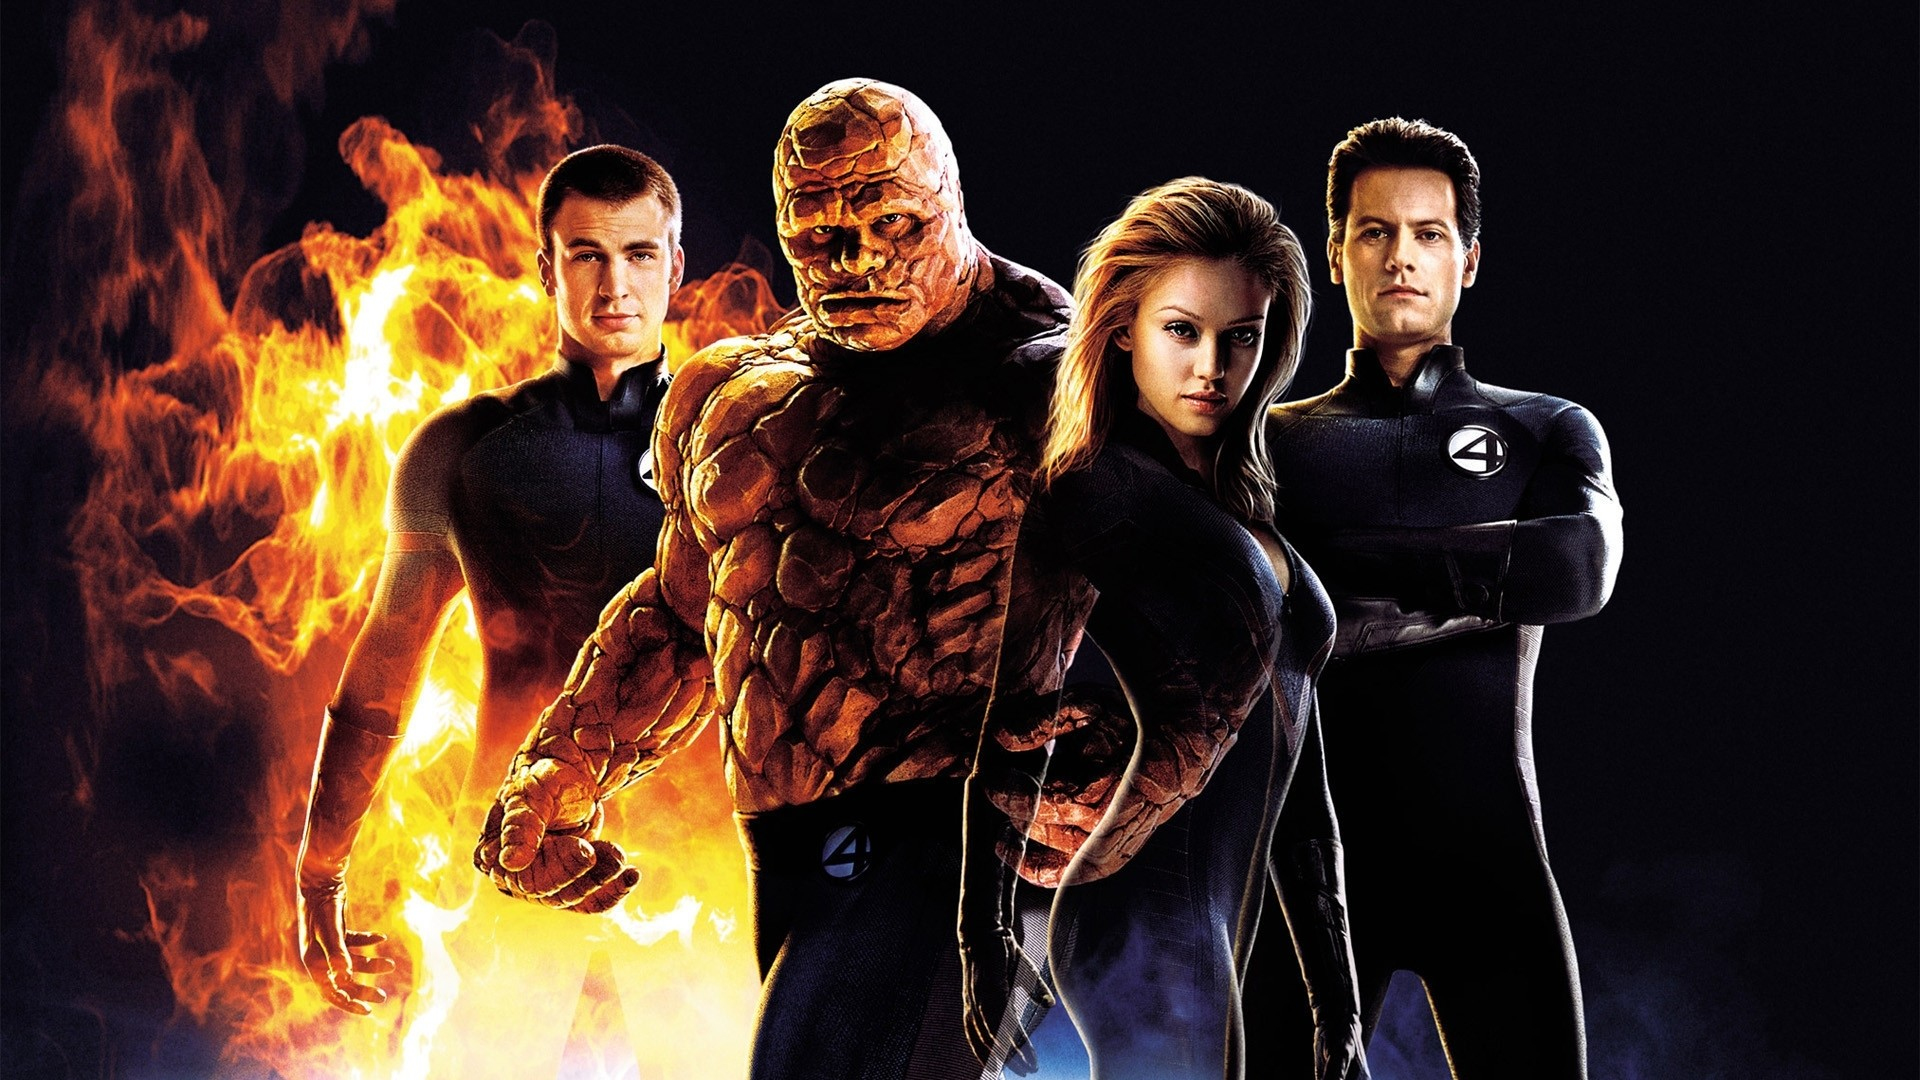 1920x1080 Wallpapers Marvel Full Hd P I Superheroes Fantastic Four  .